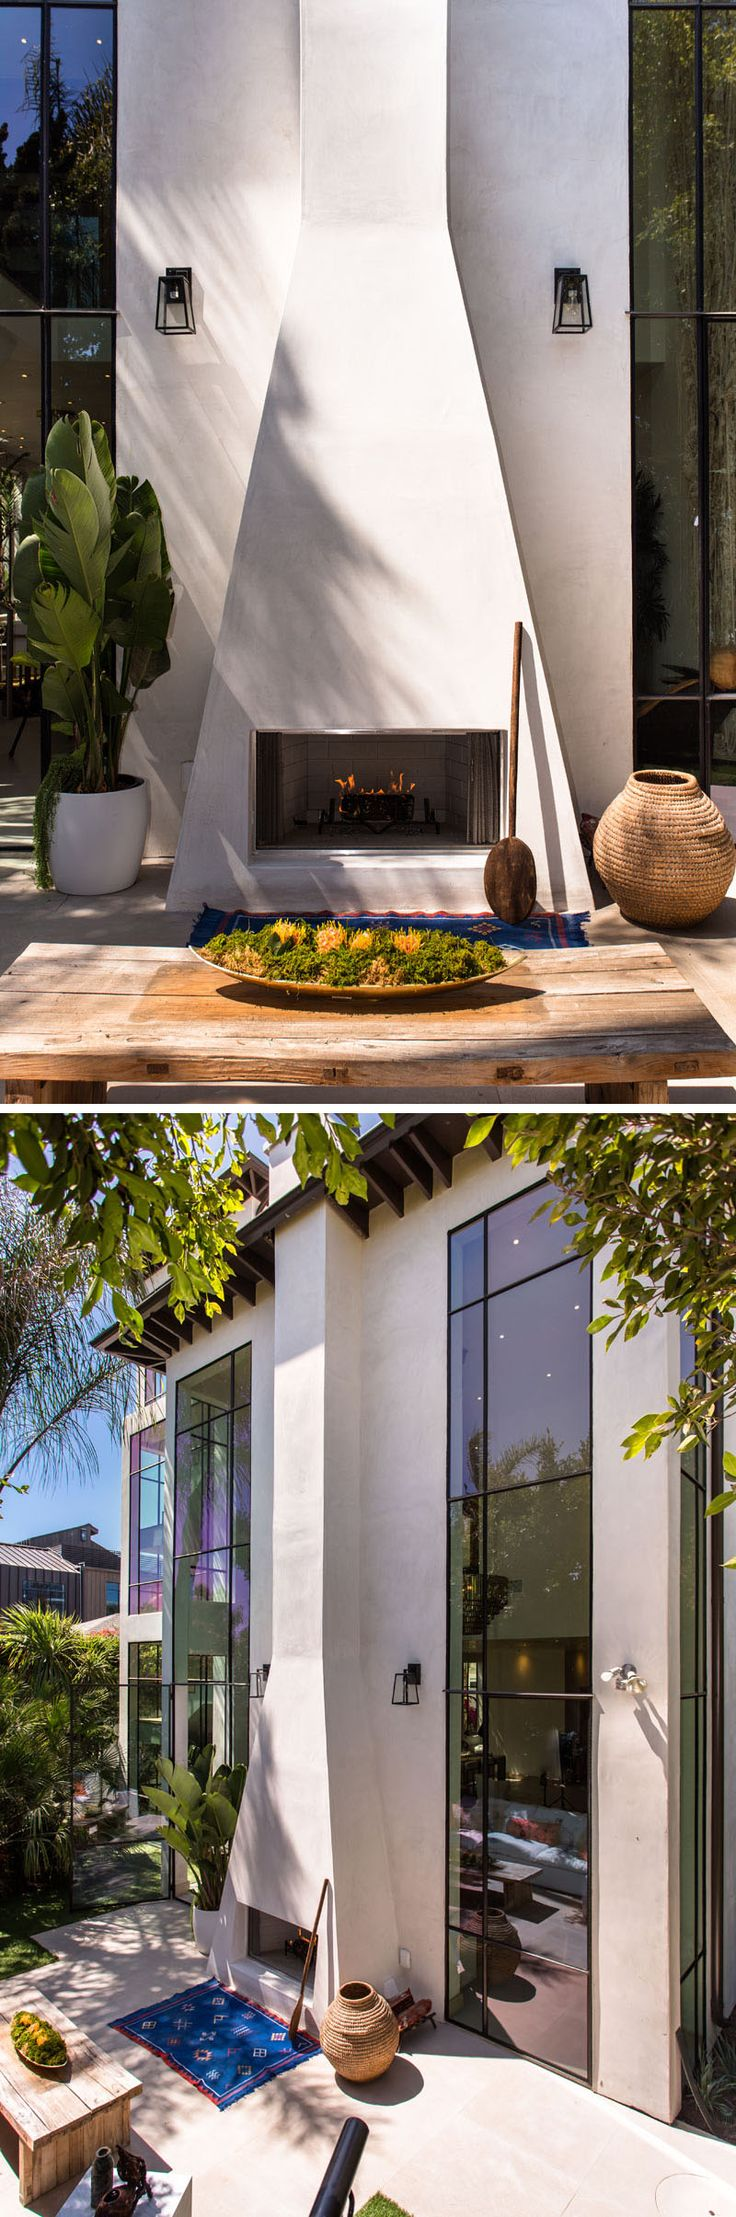 284 best fireplaces images on pinterest architecture modern